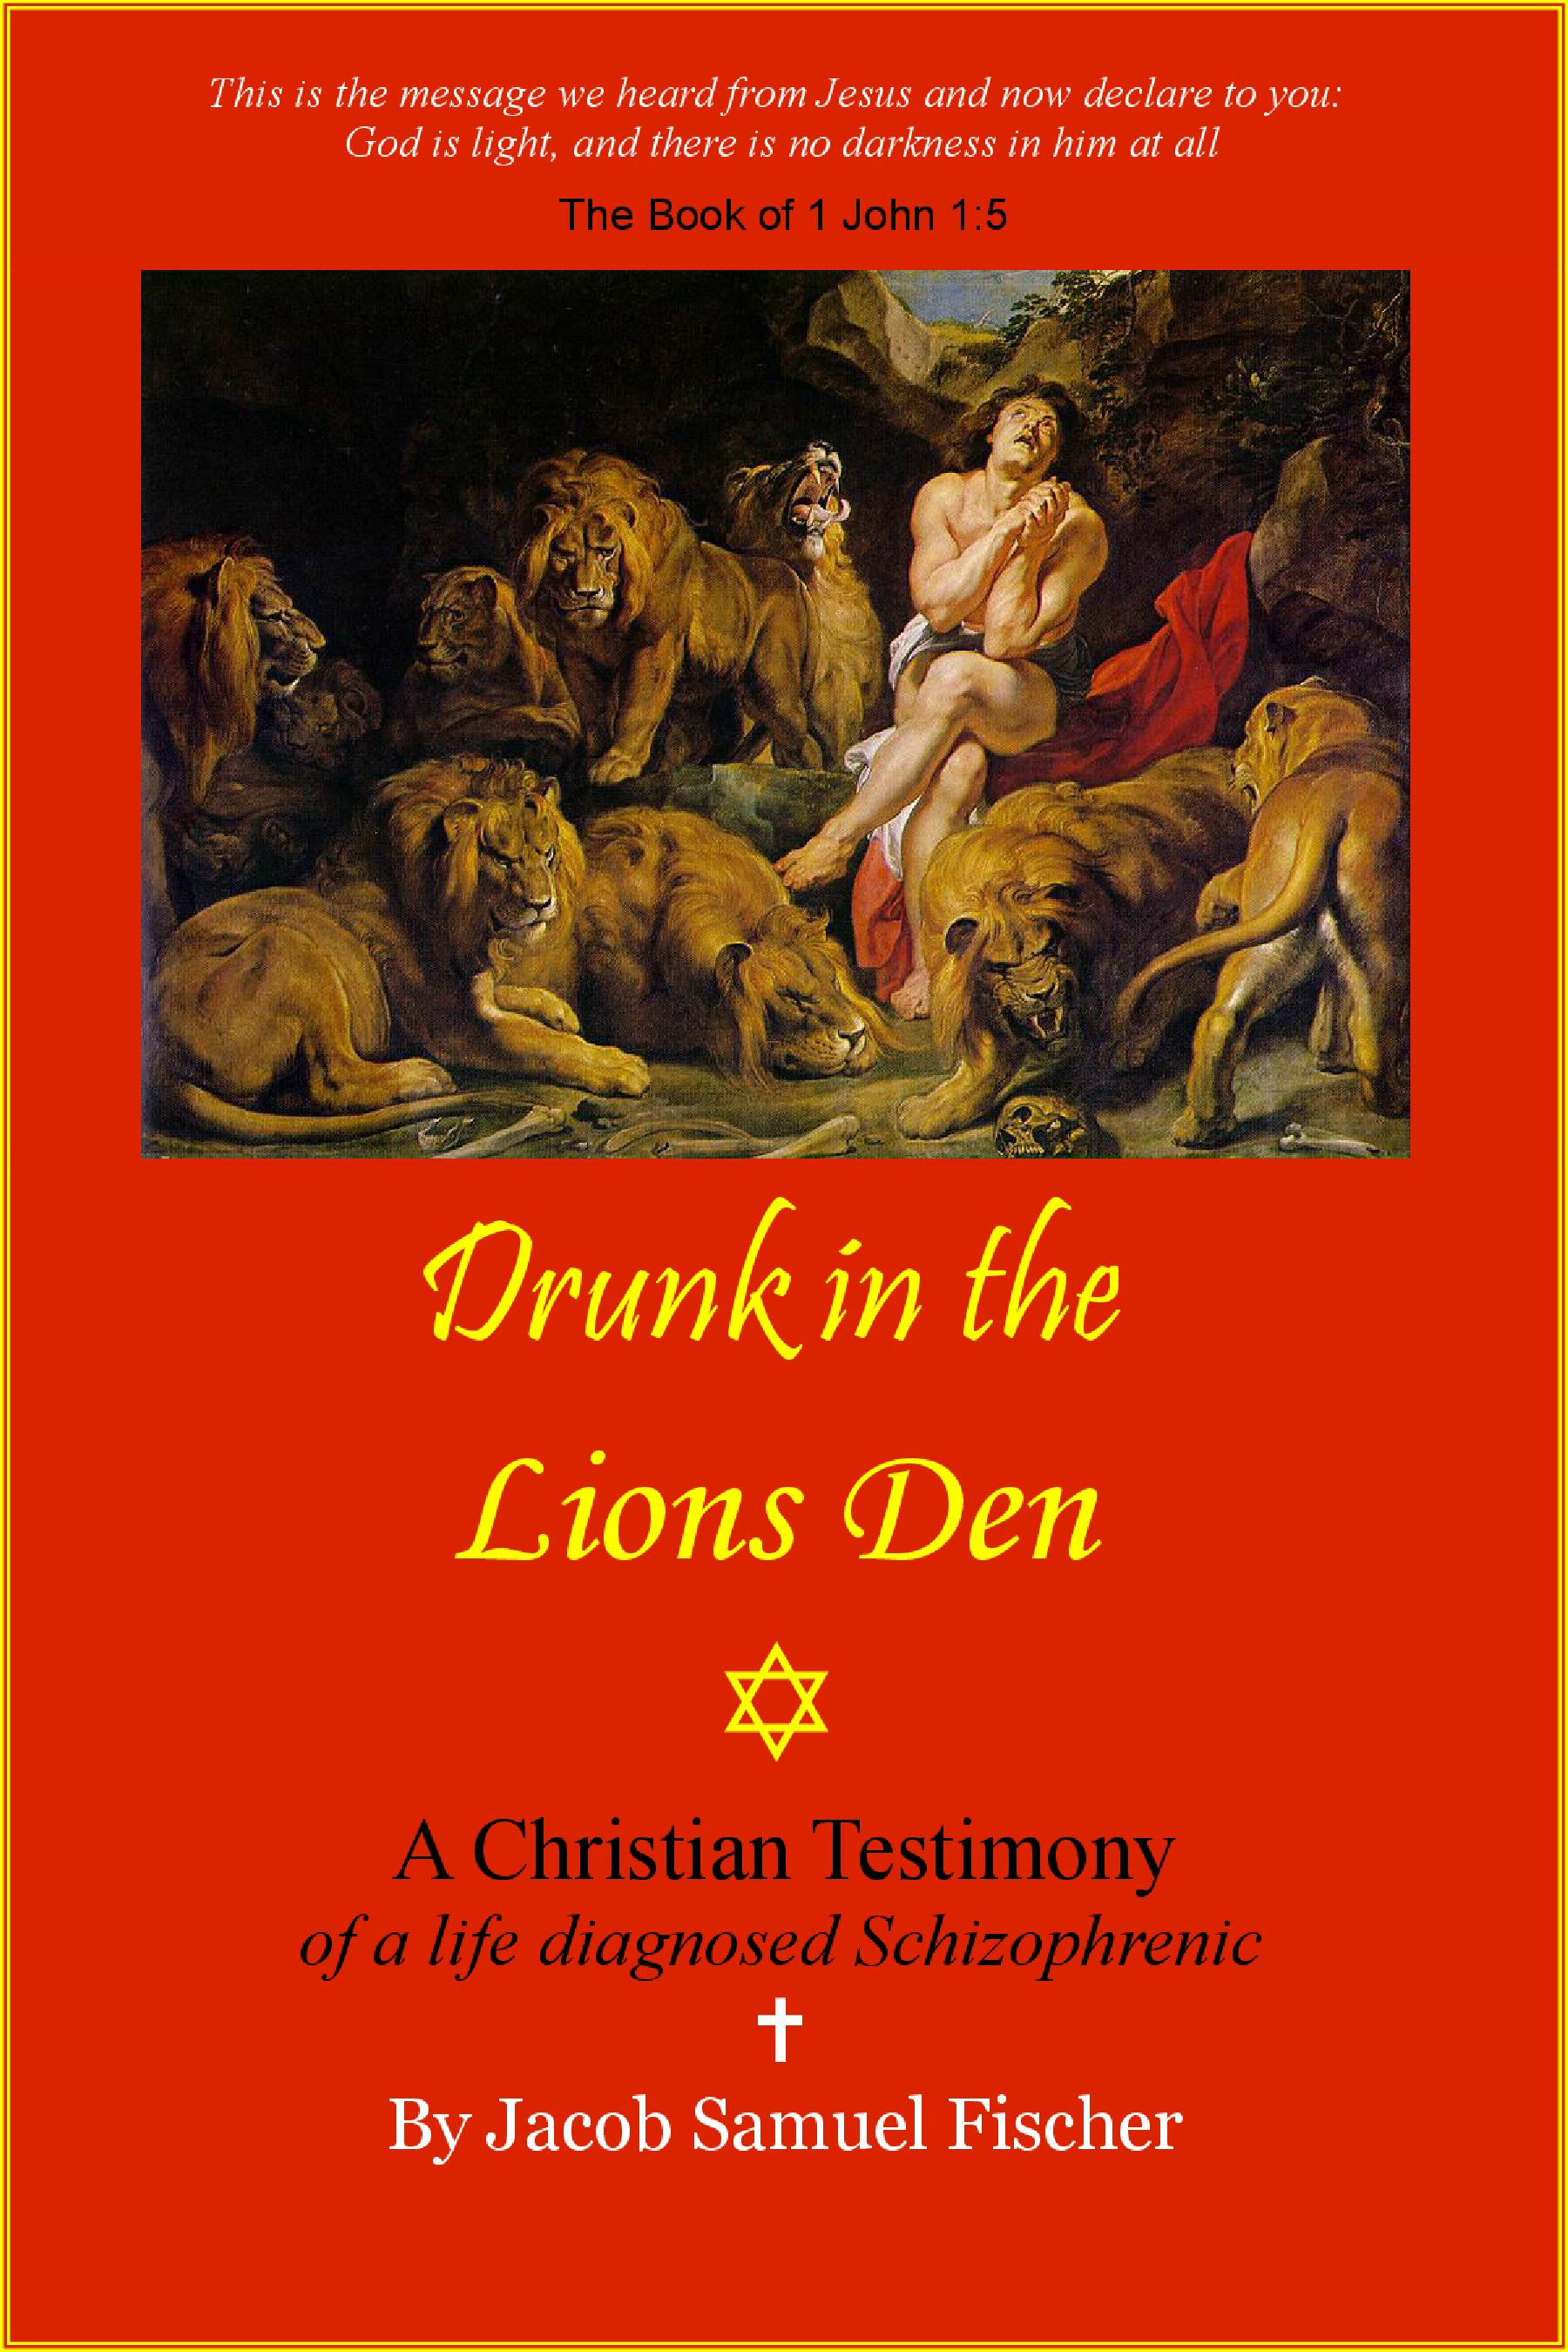 DRUNK IN THE LIONS DEN ~ Christian testimony of a life diagnosed Schizophrenic